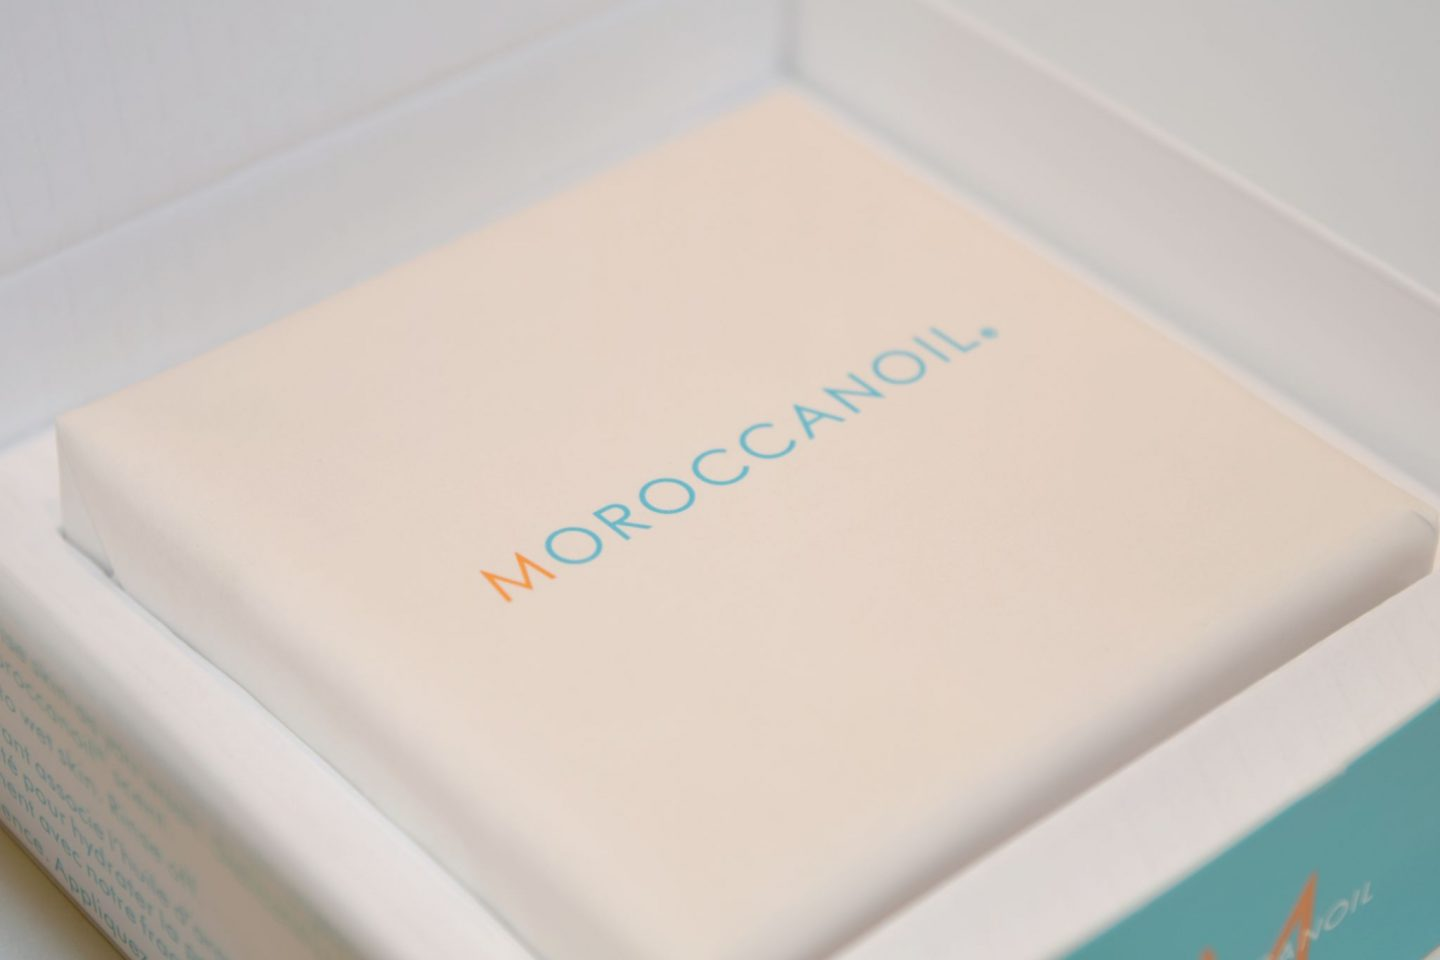 MoroccanOil Cleansing Bar 1